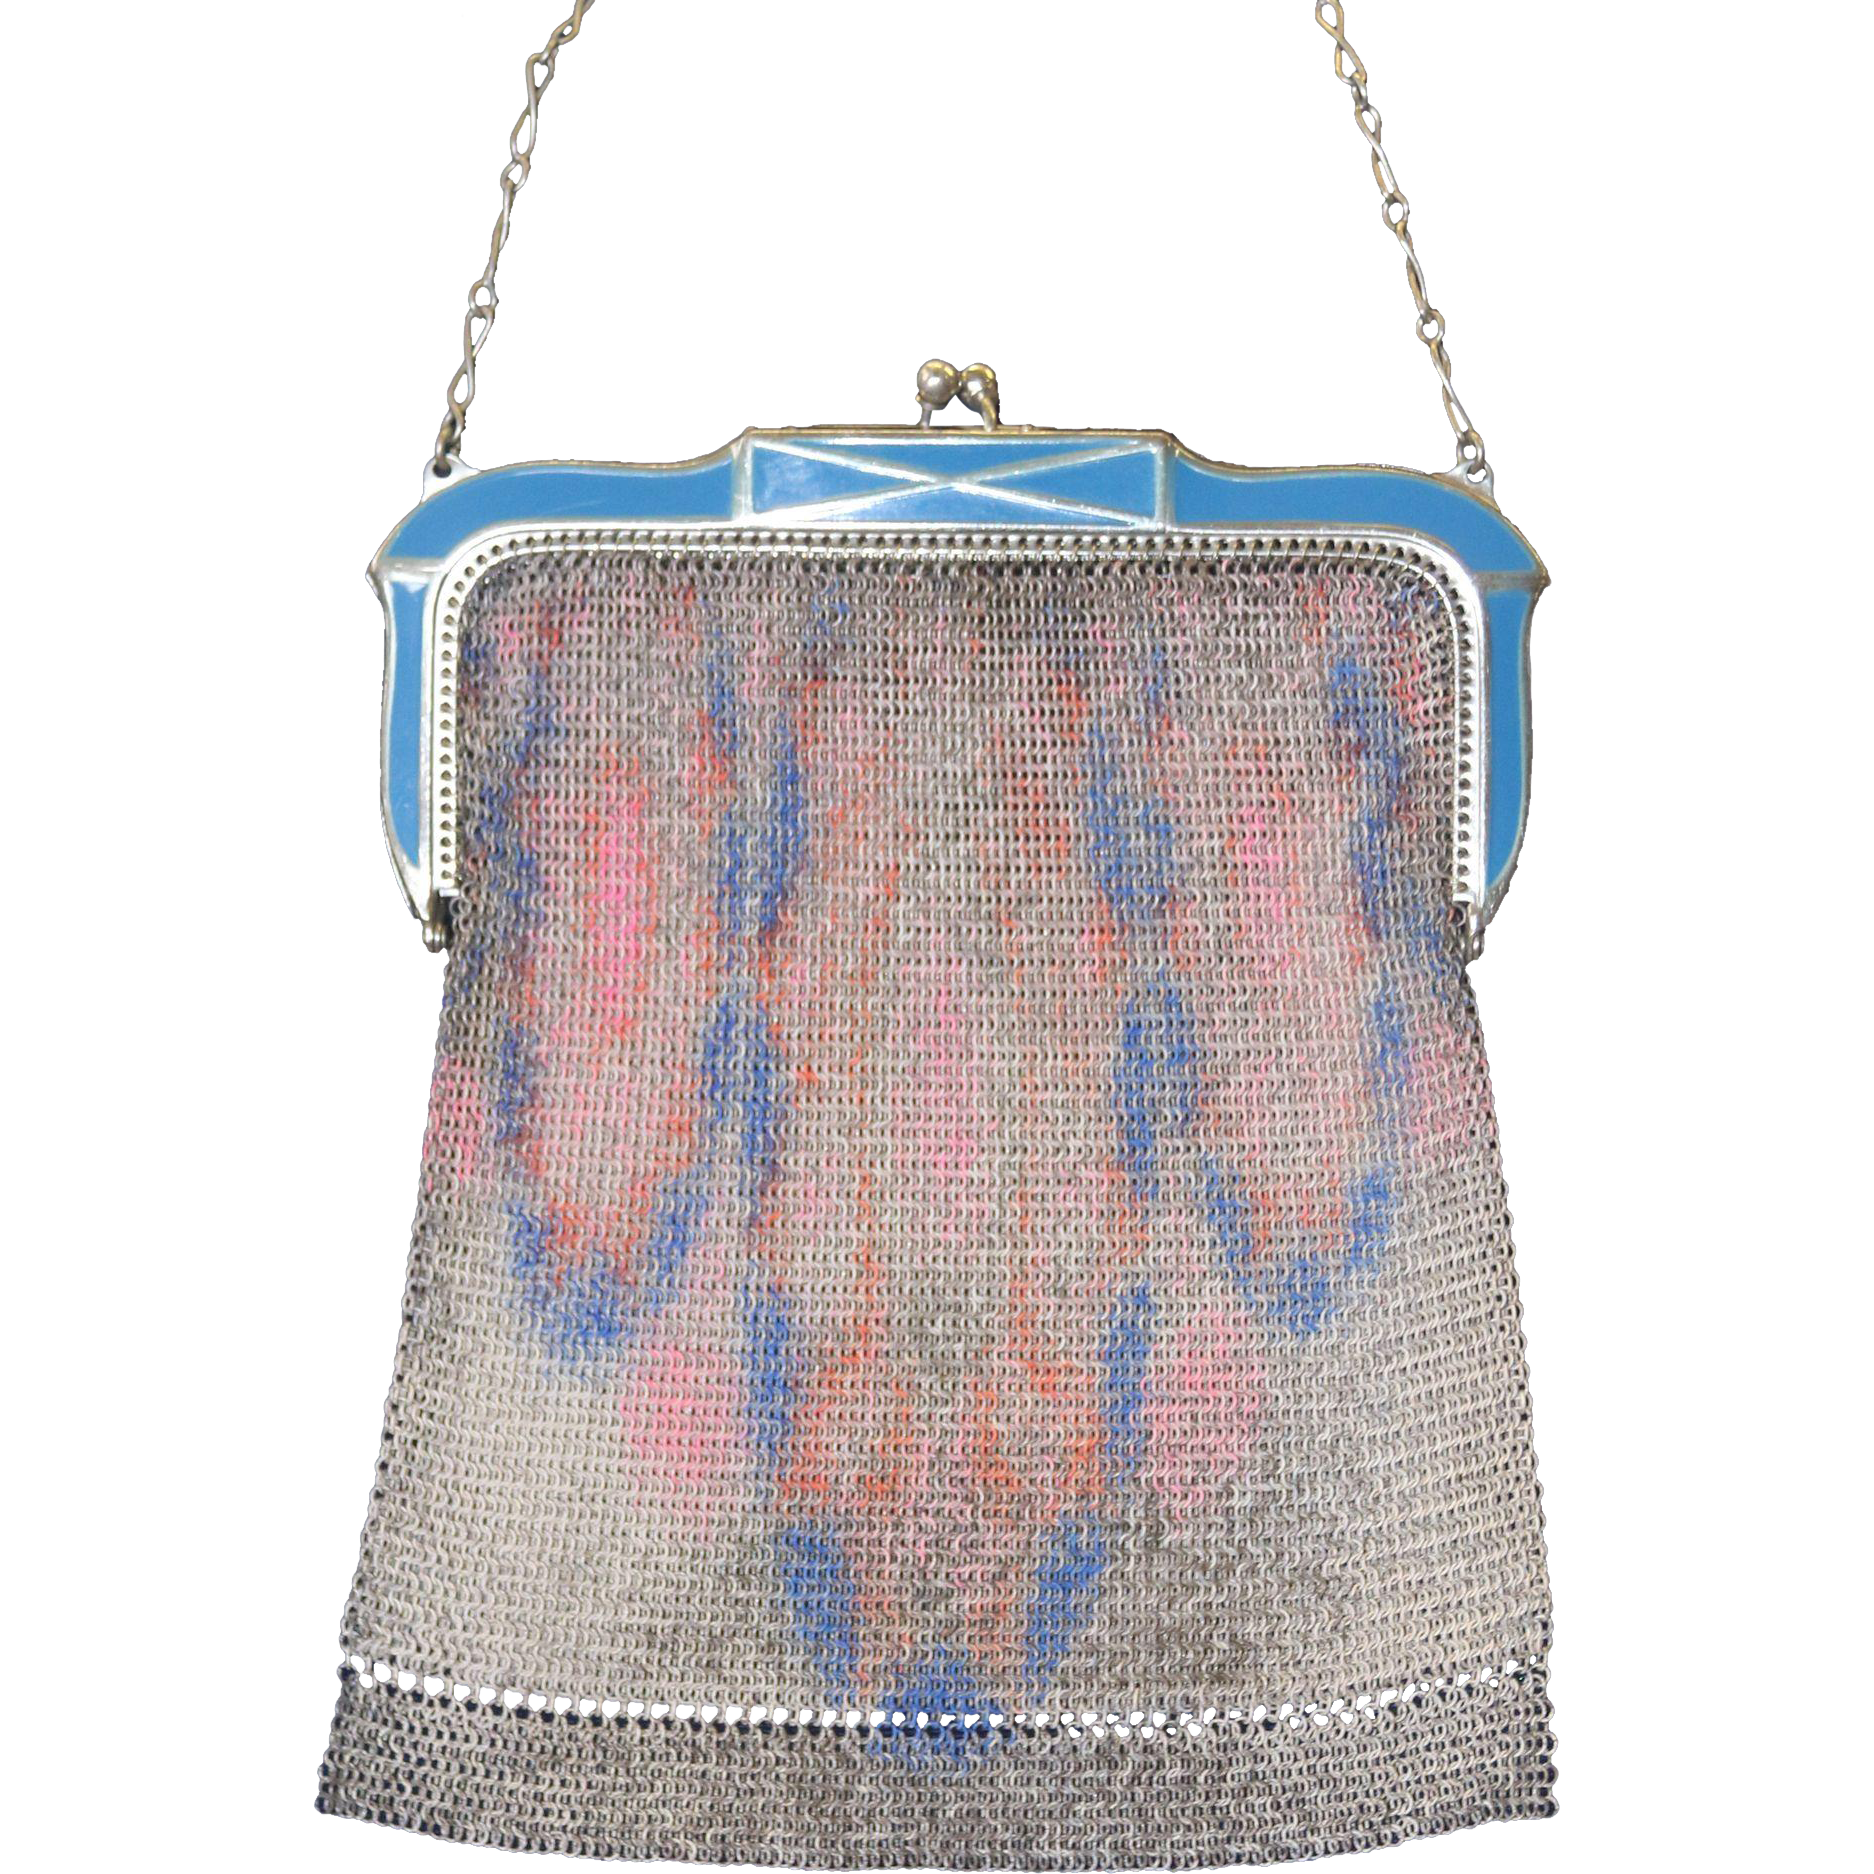 Vintage Whiting And Davis Mesh Purse 119